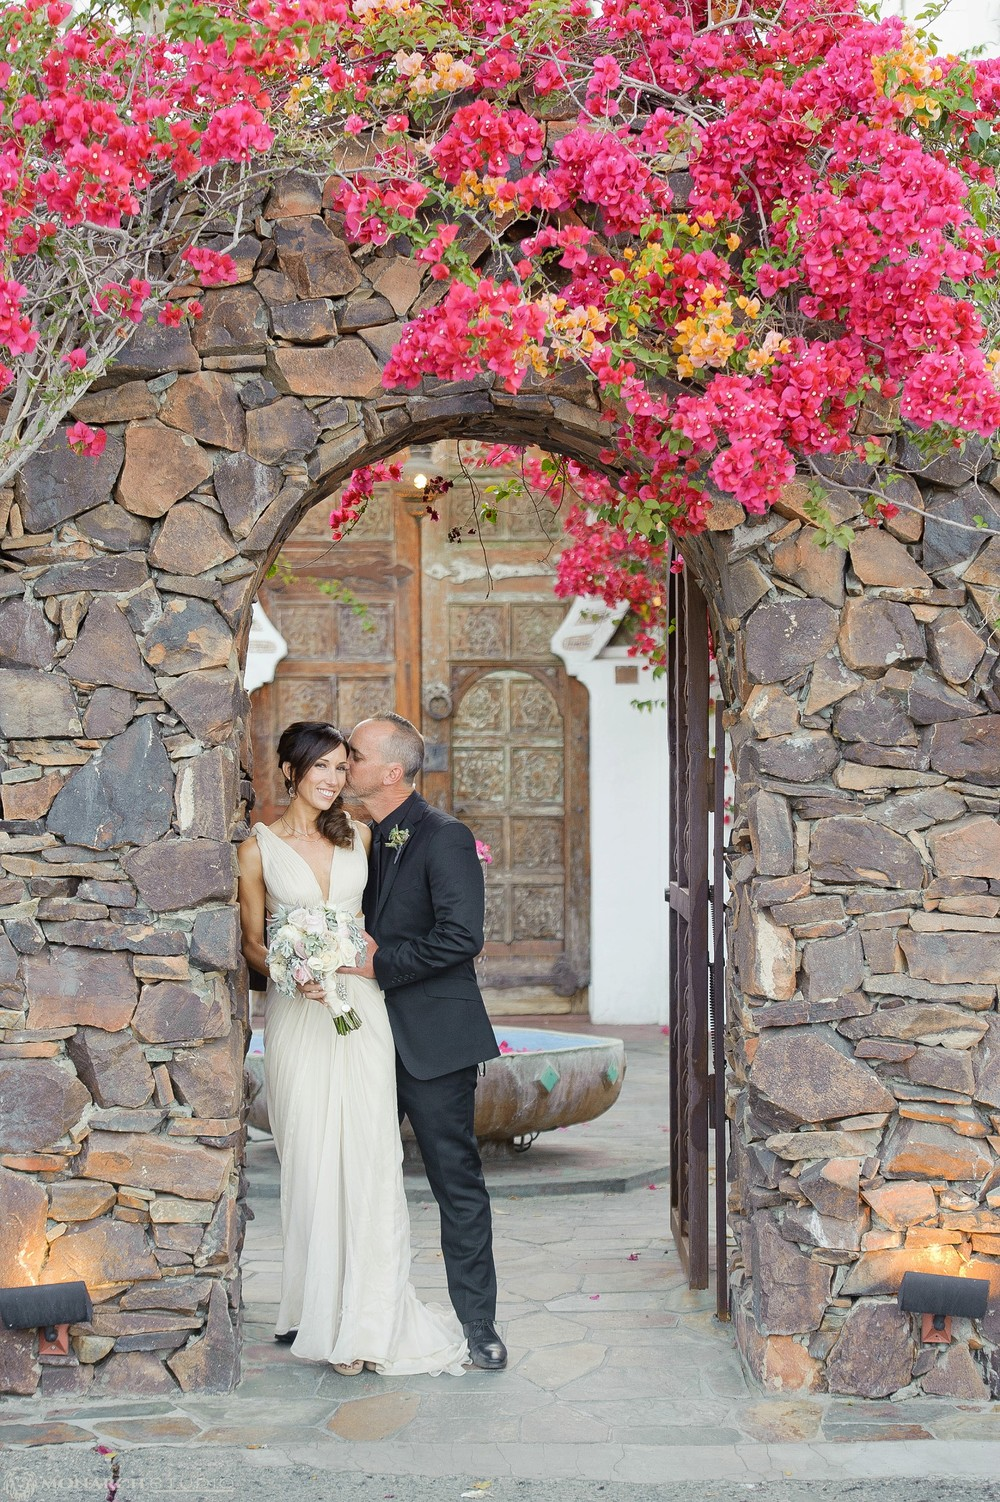 Palm-Springs-Wedding-California-Photographer-86.JPG